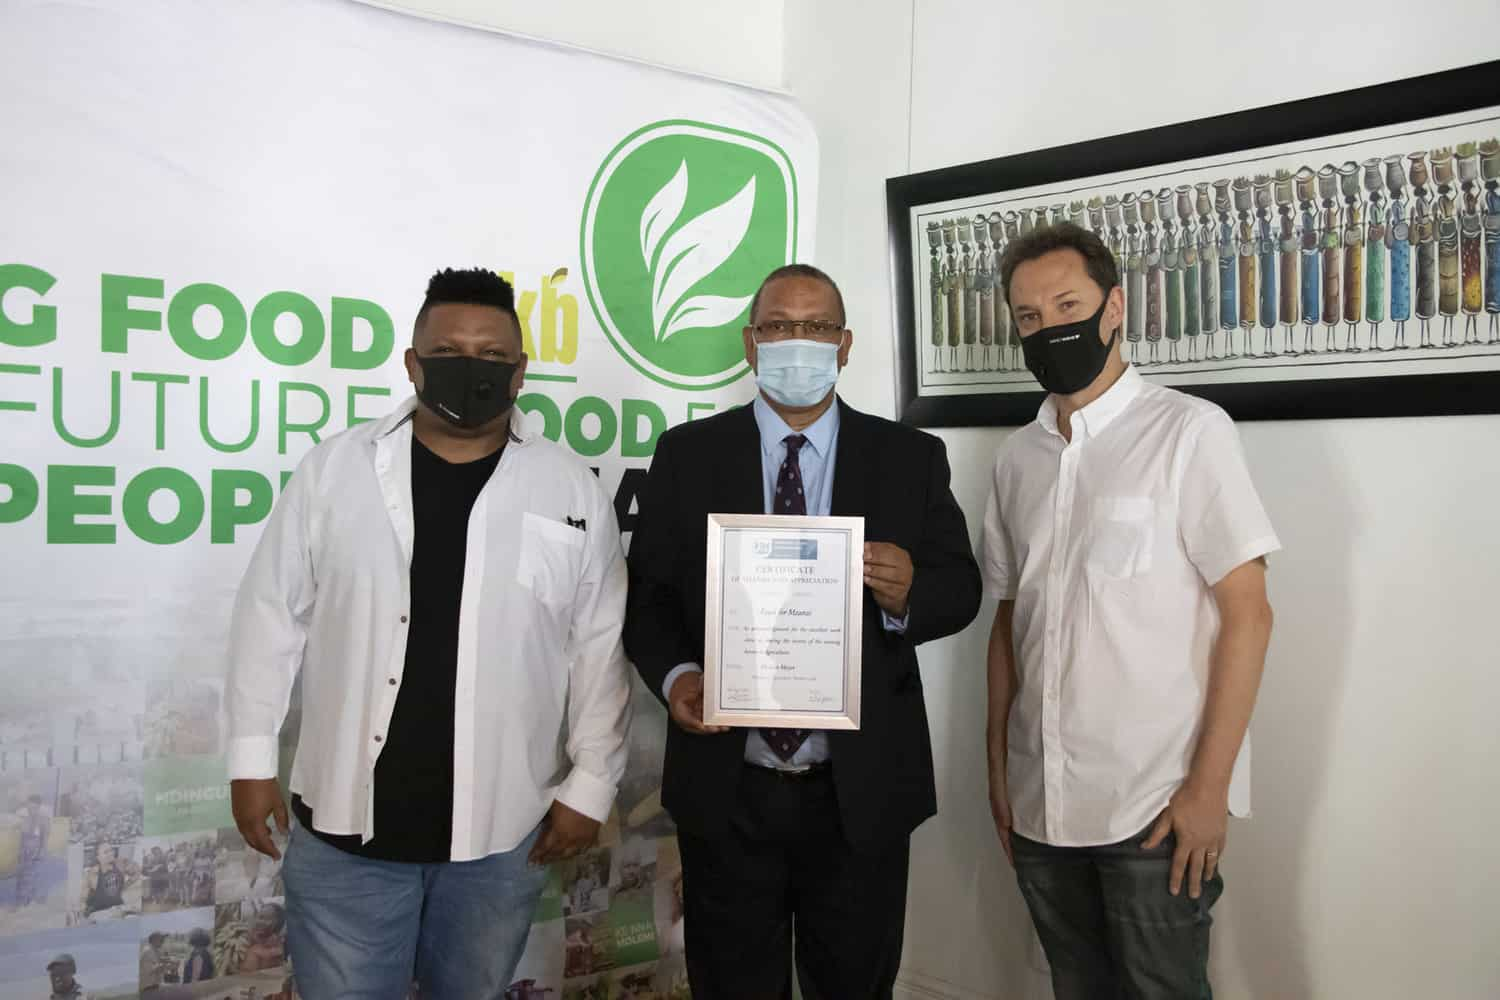 Food For Mzansi's co-founders, Ivor Price and Kobus Louwrens, receiving an award from the Western Cape minister of agriculture, Dr Ivan Meyer. Photo: Food For Mzansi